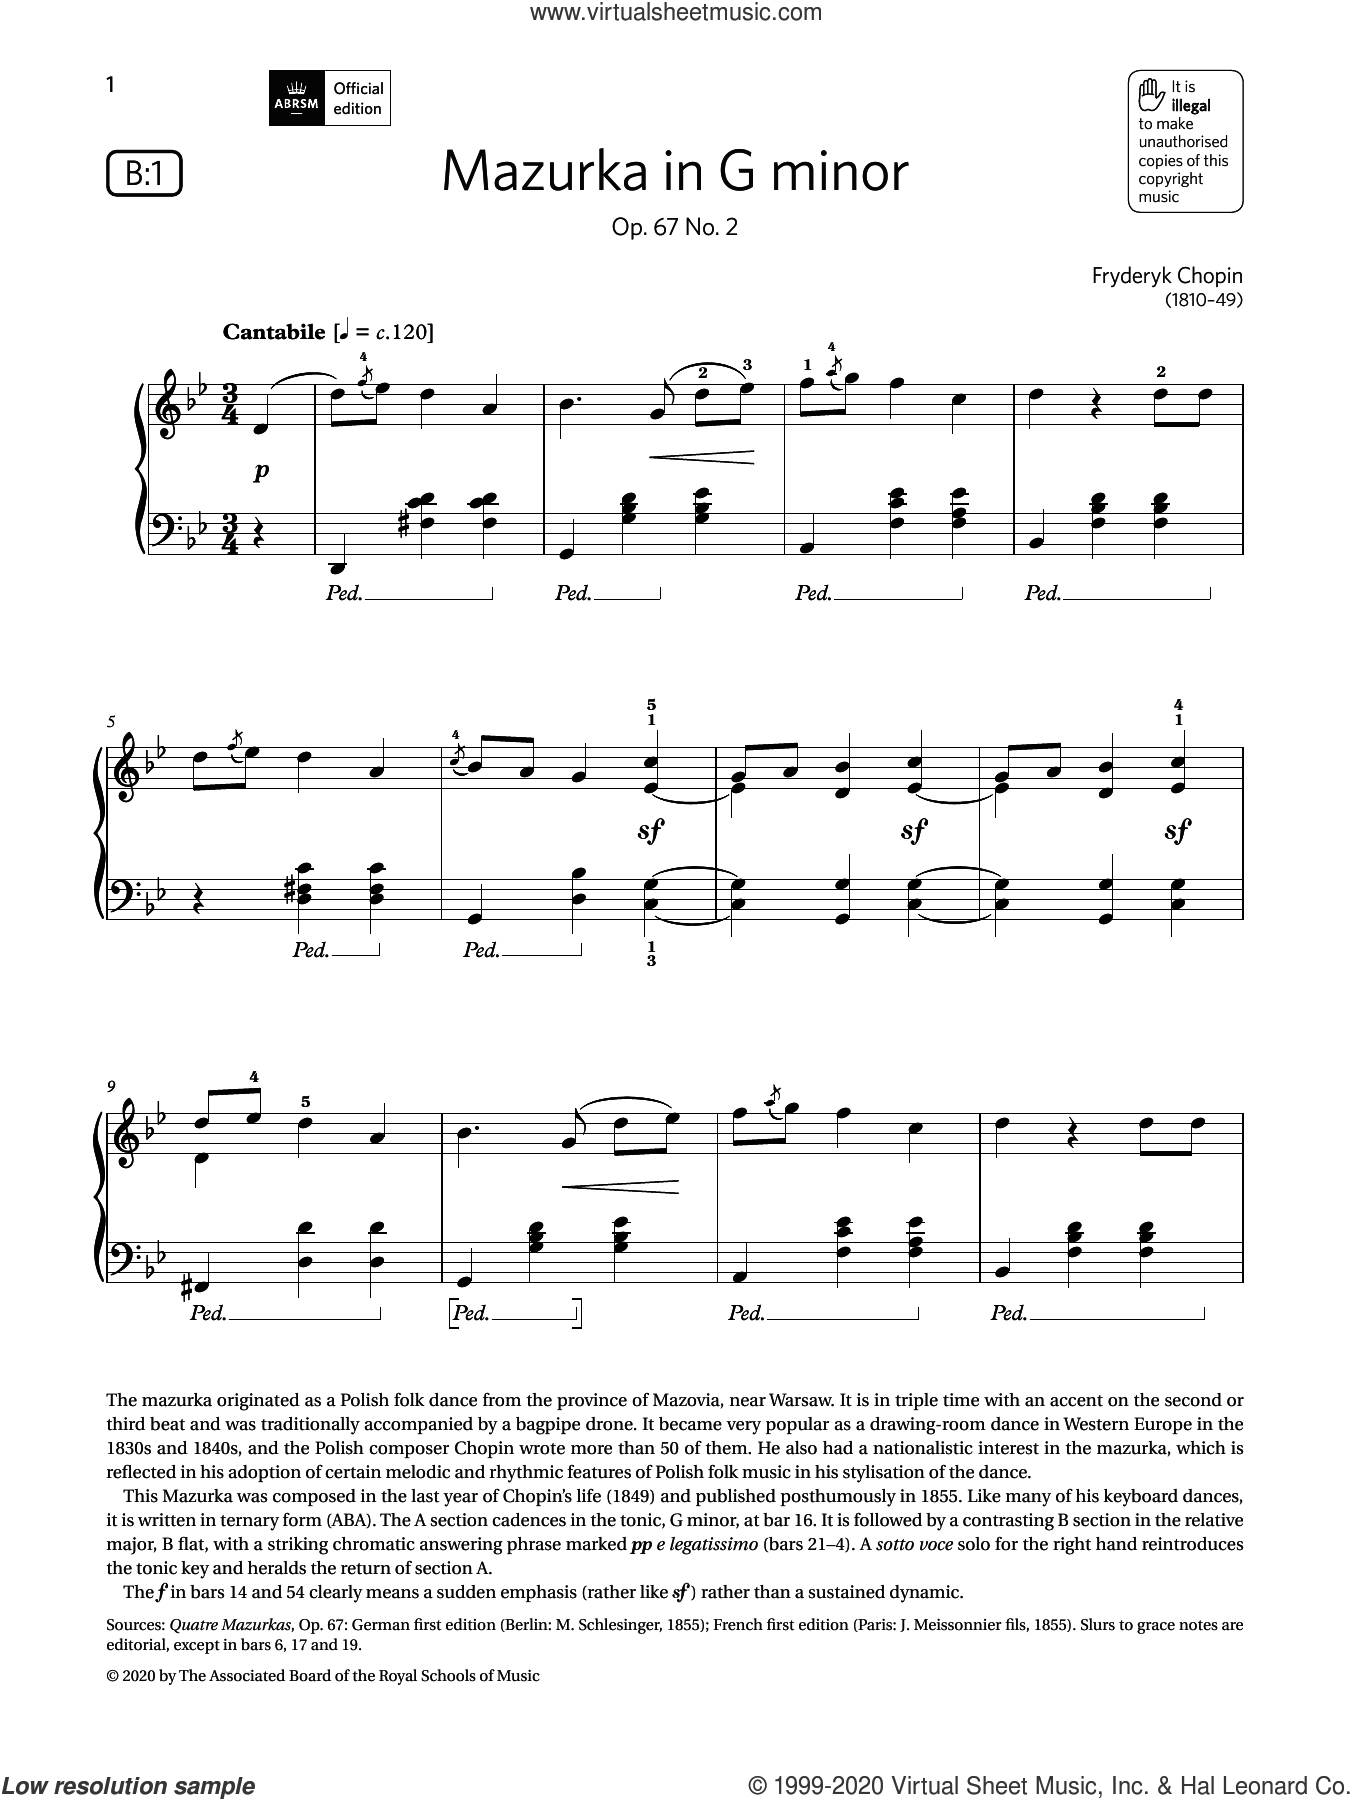 Mazurka in G minor (Grade 6, list B1, from the ABRSM Piano Syllabus 2021 and 2022) sheet music for piano solo by Frederic Chopin, classical score, intermediate skill level